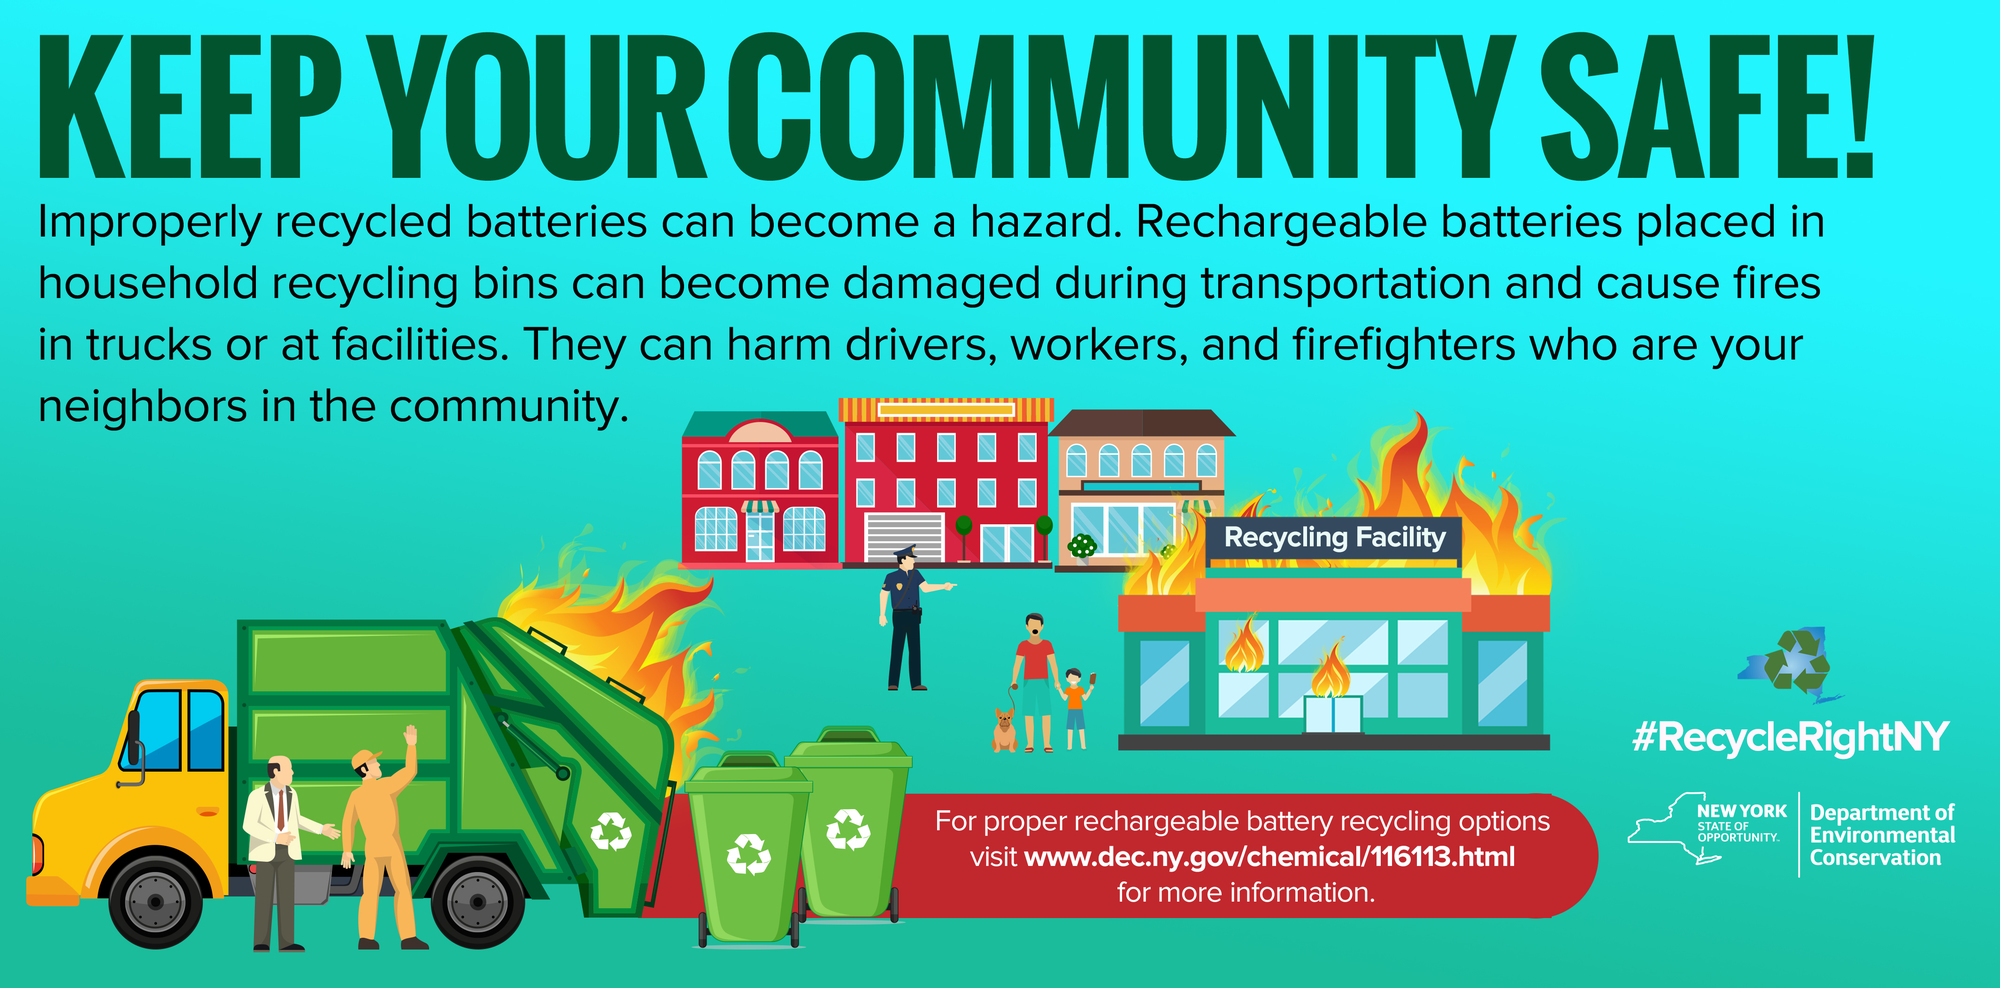 Keep your community safe! Rechargeable batteries placed in household recycling bins during transportation cause fires in trucks or at facilities.